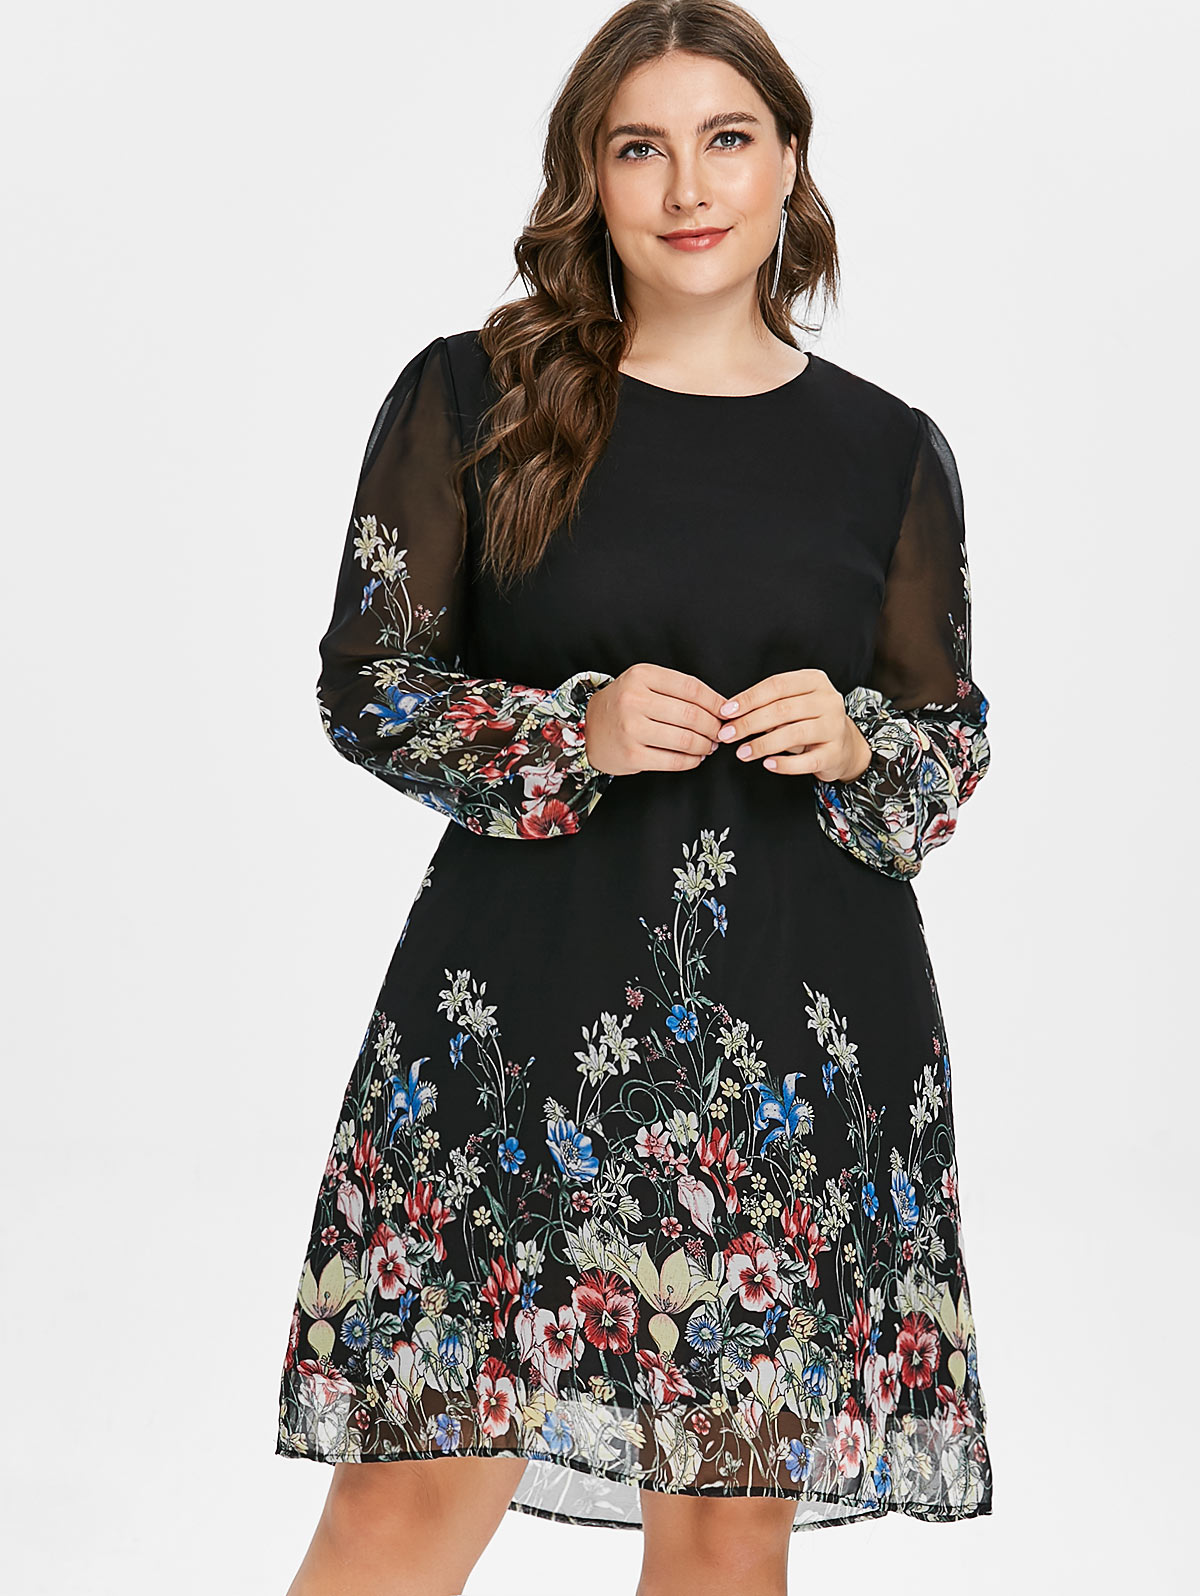 US $10.82 53% OFF|Wipalo Multi Color Plus Size Floral Embroidery Tunic  Dress Spring Summer Elegant Tribal Flower Print Vocation Dress Vestidos  5XL-in ...